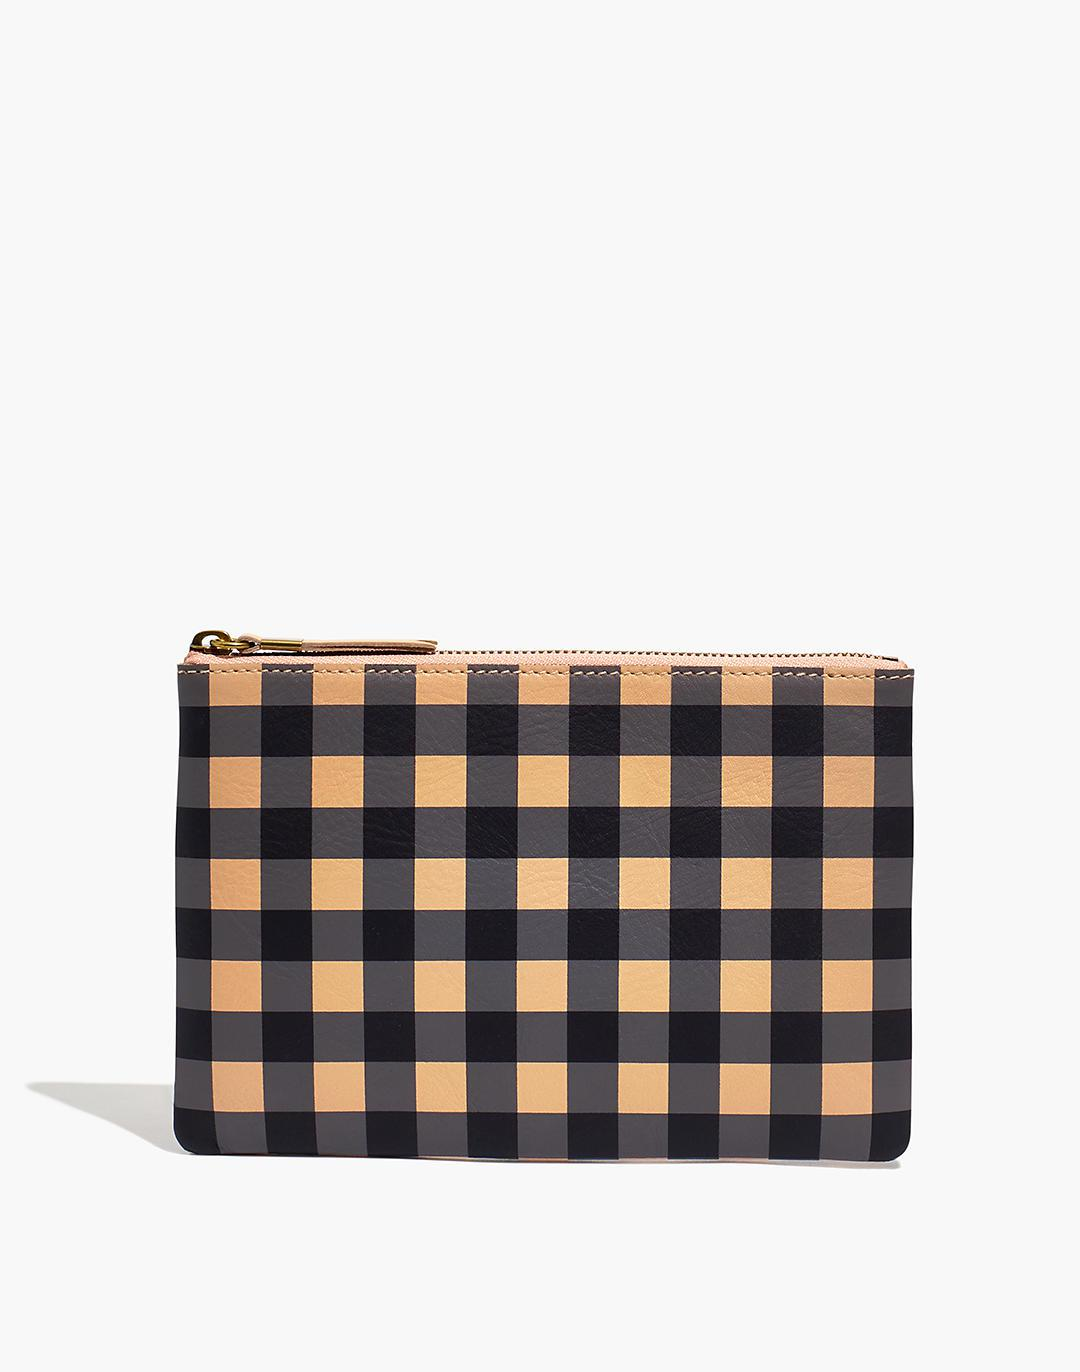 The Leather Pouch Clutch: Gingham Edition